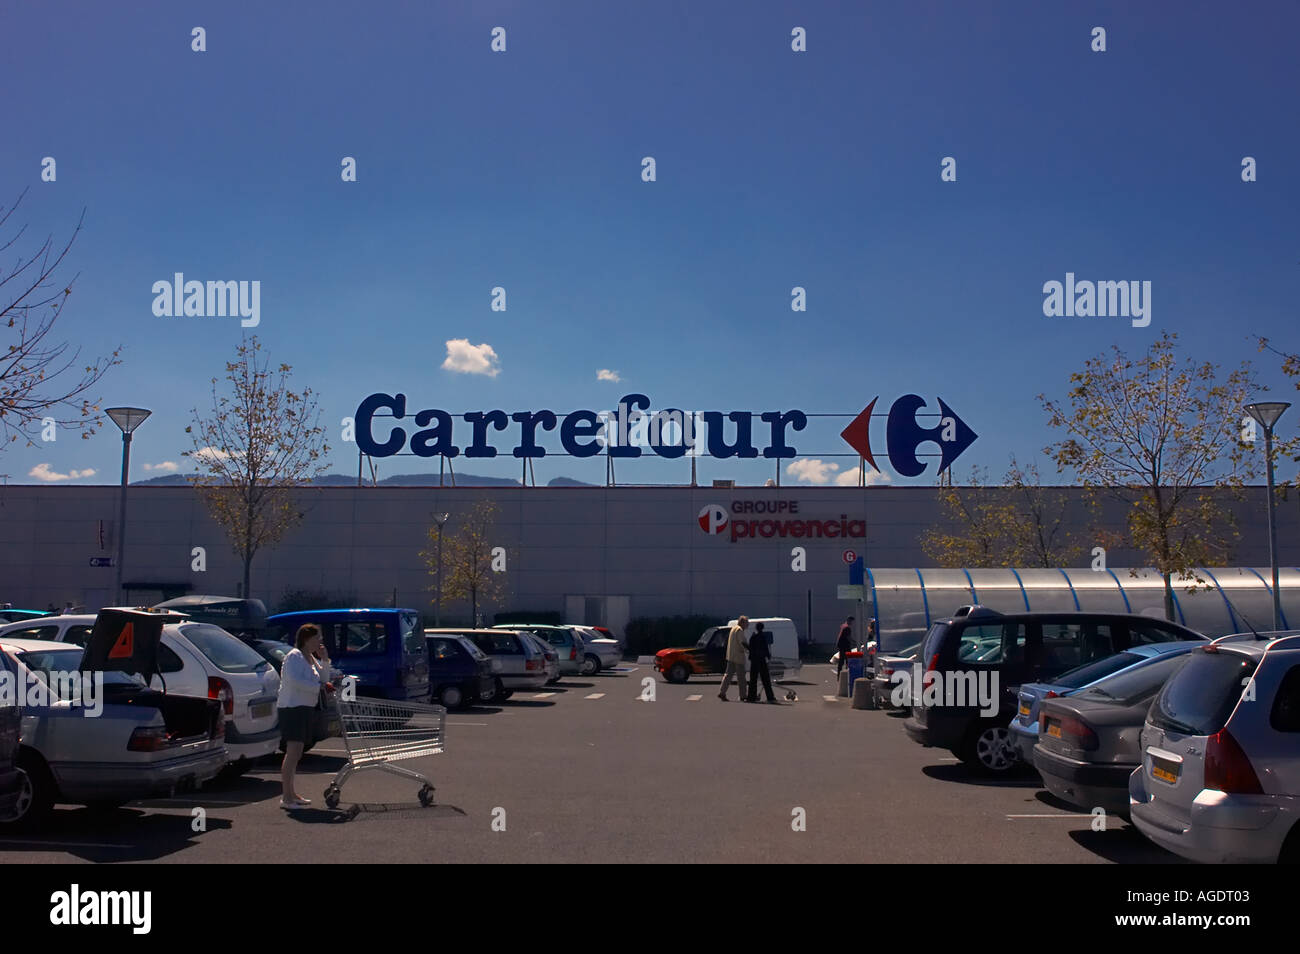 carrefour supermarket and car park in thonon france stock photo royalty free image 4629506 alamy. Black Bedroom Furniture Sets. Home Design Ideas